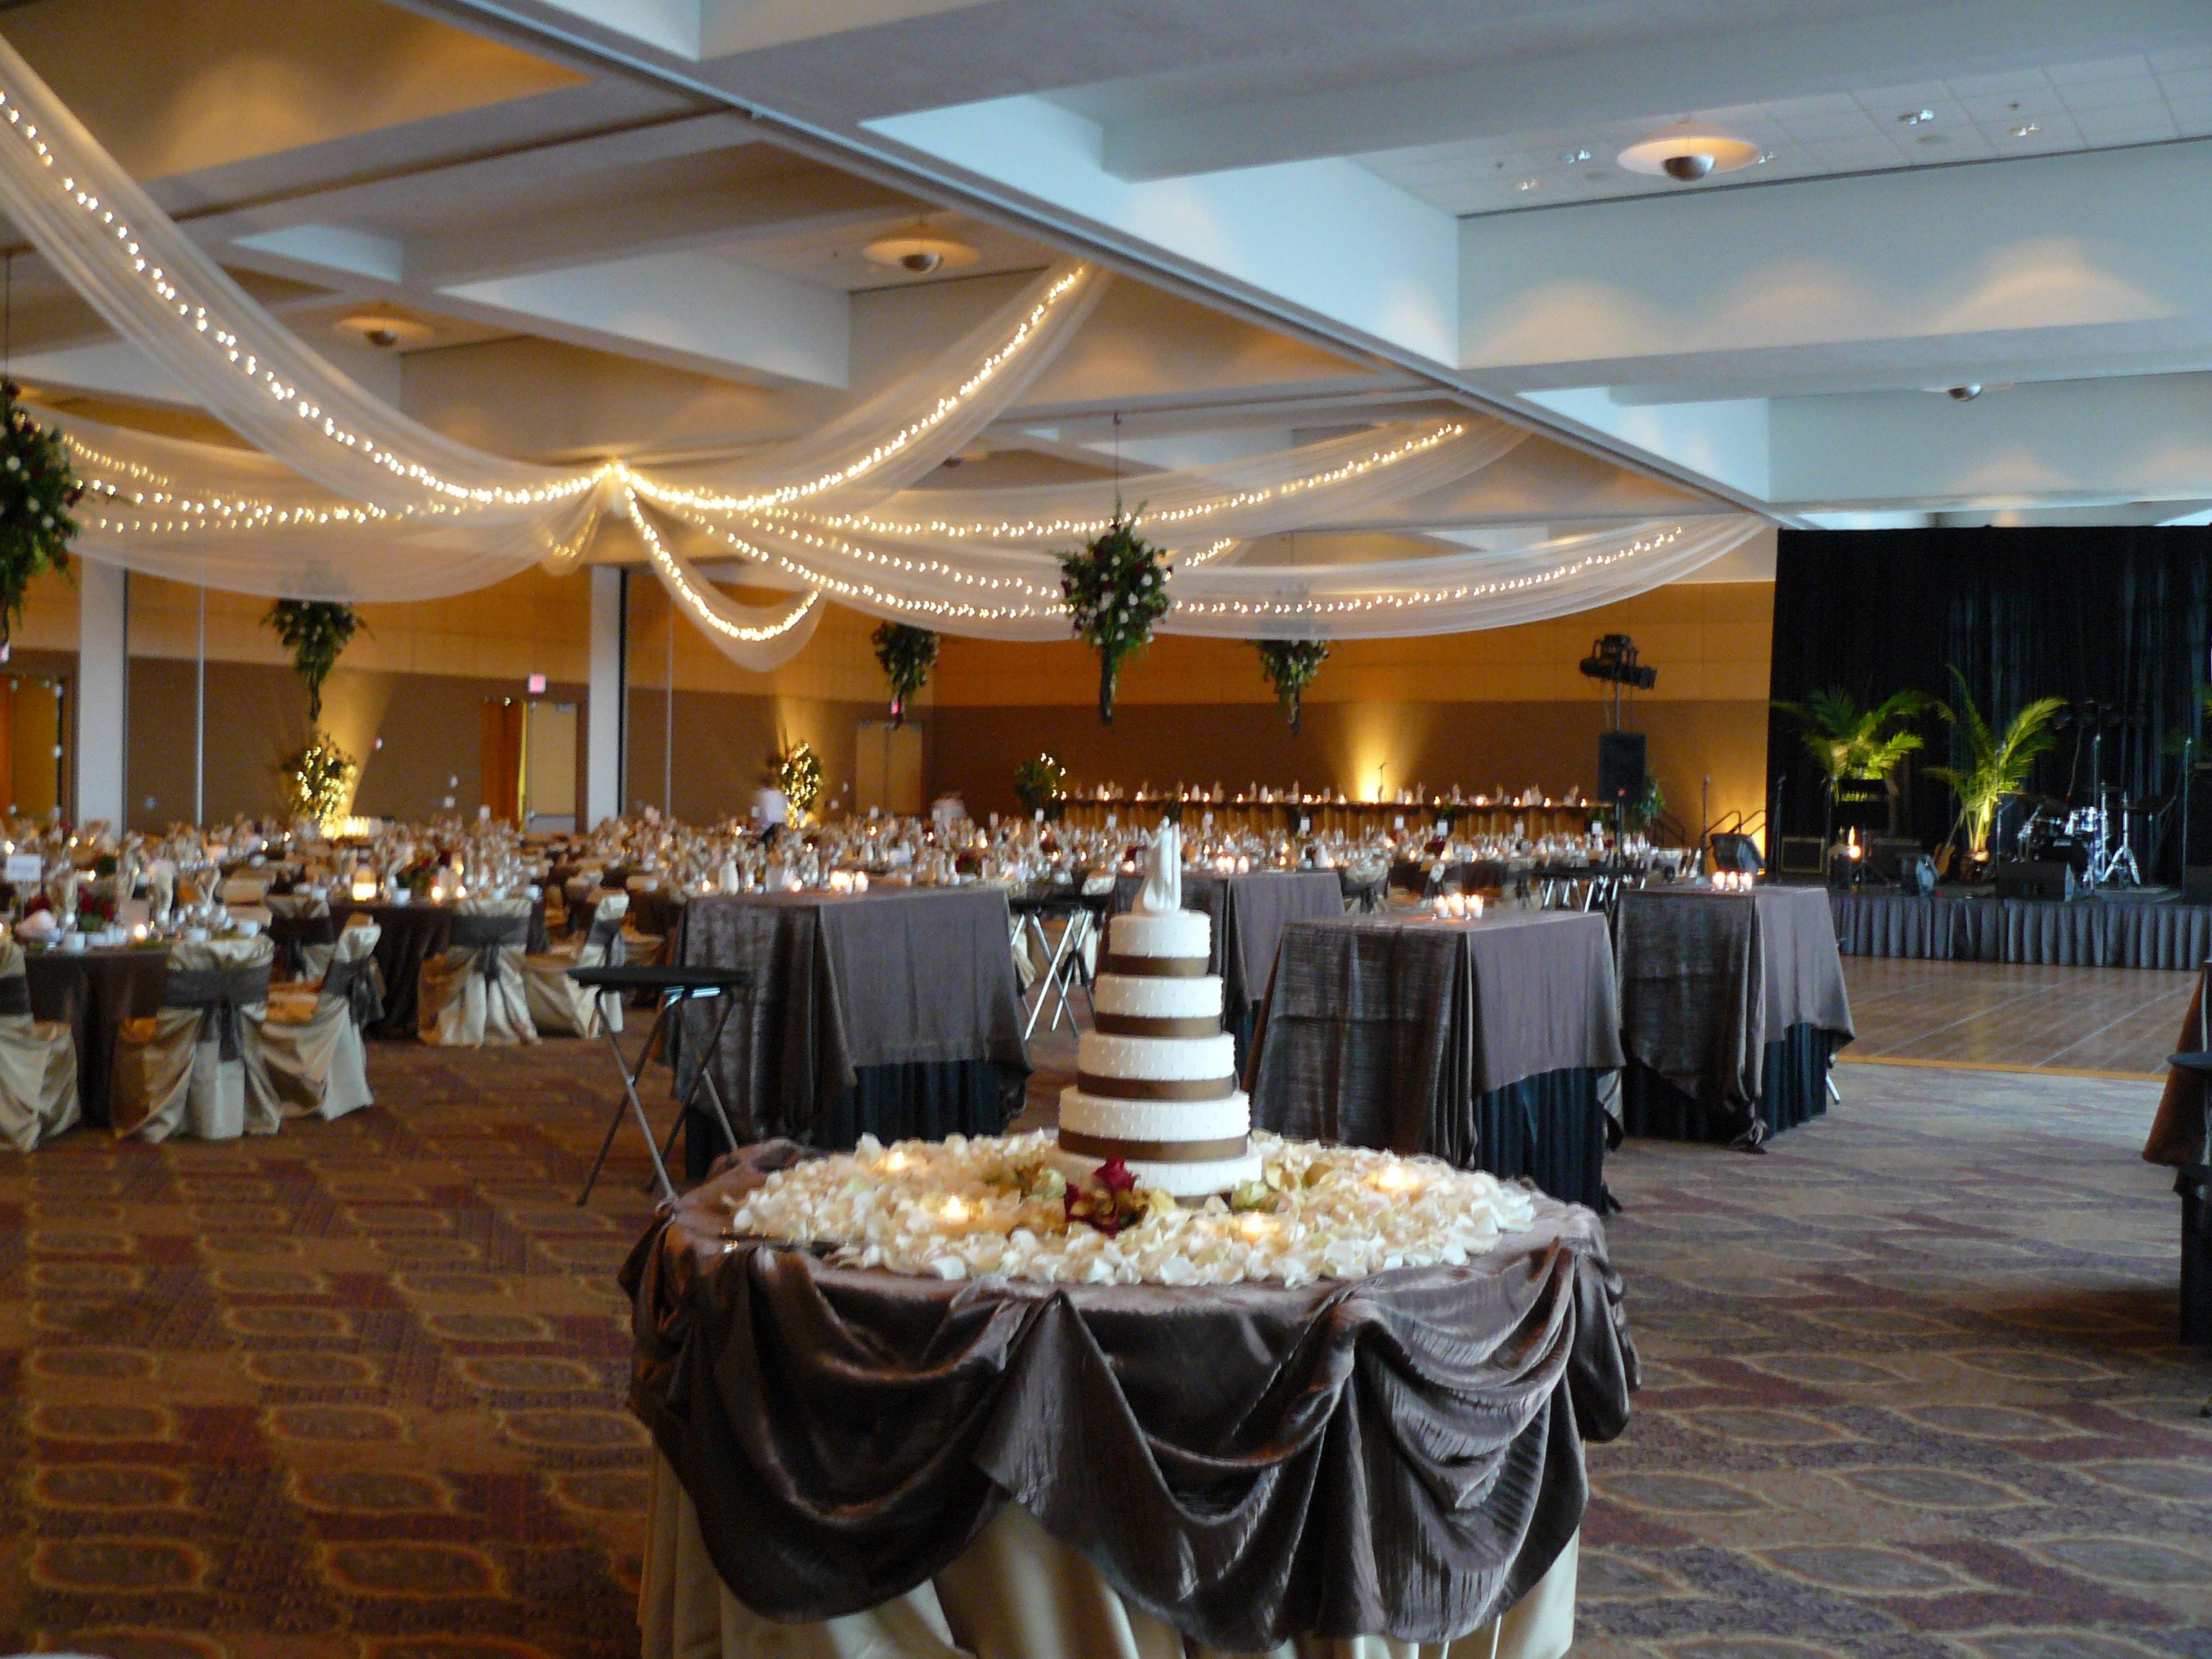 affordable wedding reception venues minnesota%0A   best Radisson  Duluth  MN images on Pinterest   Event lighting  Wedding  lighting and Uplighting wedding